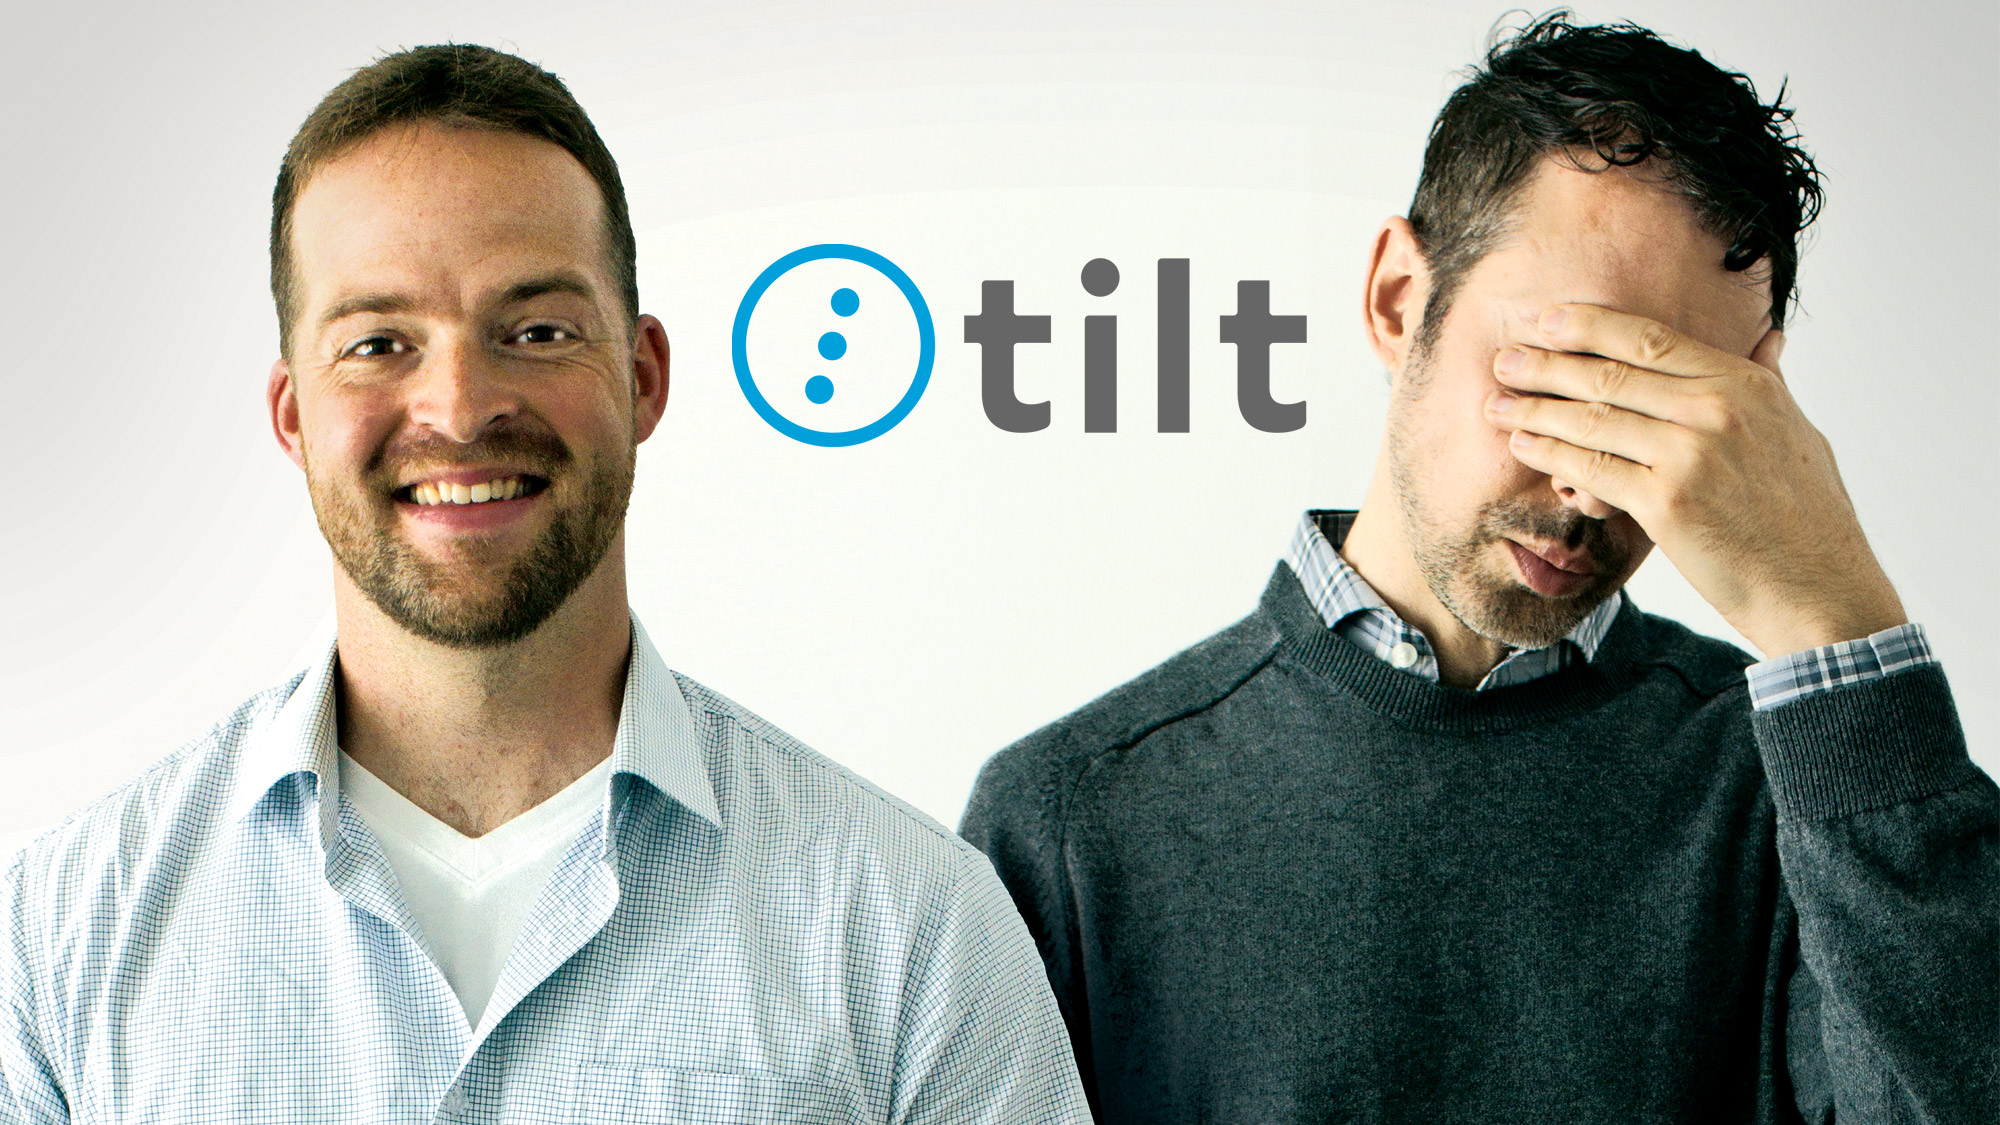 Contribute to our TILT campaign!